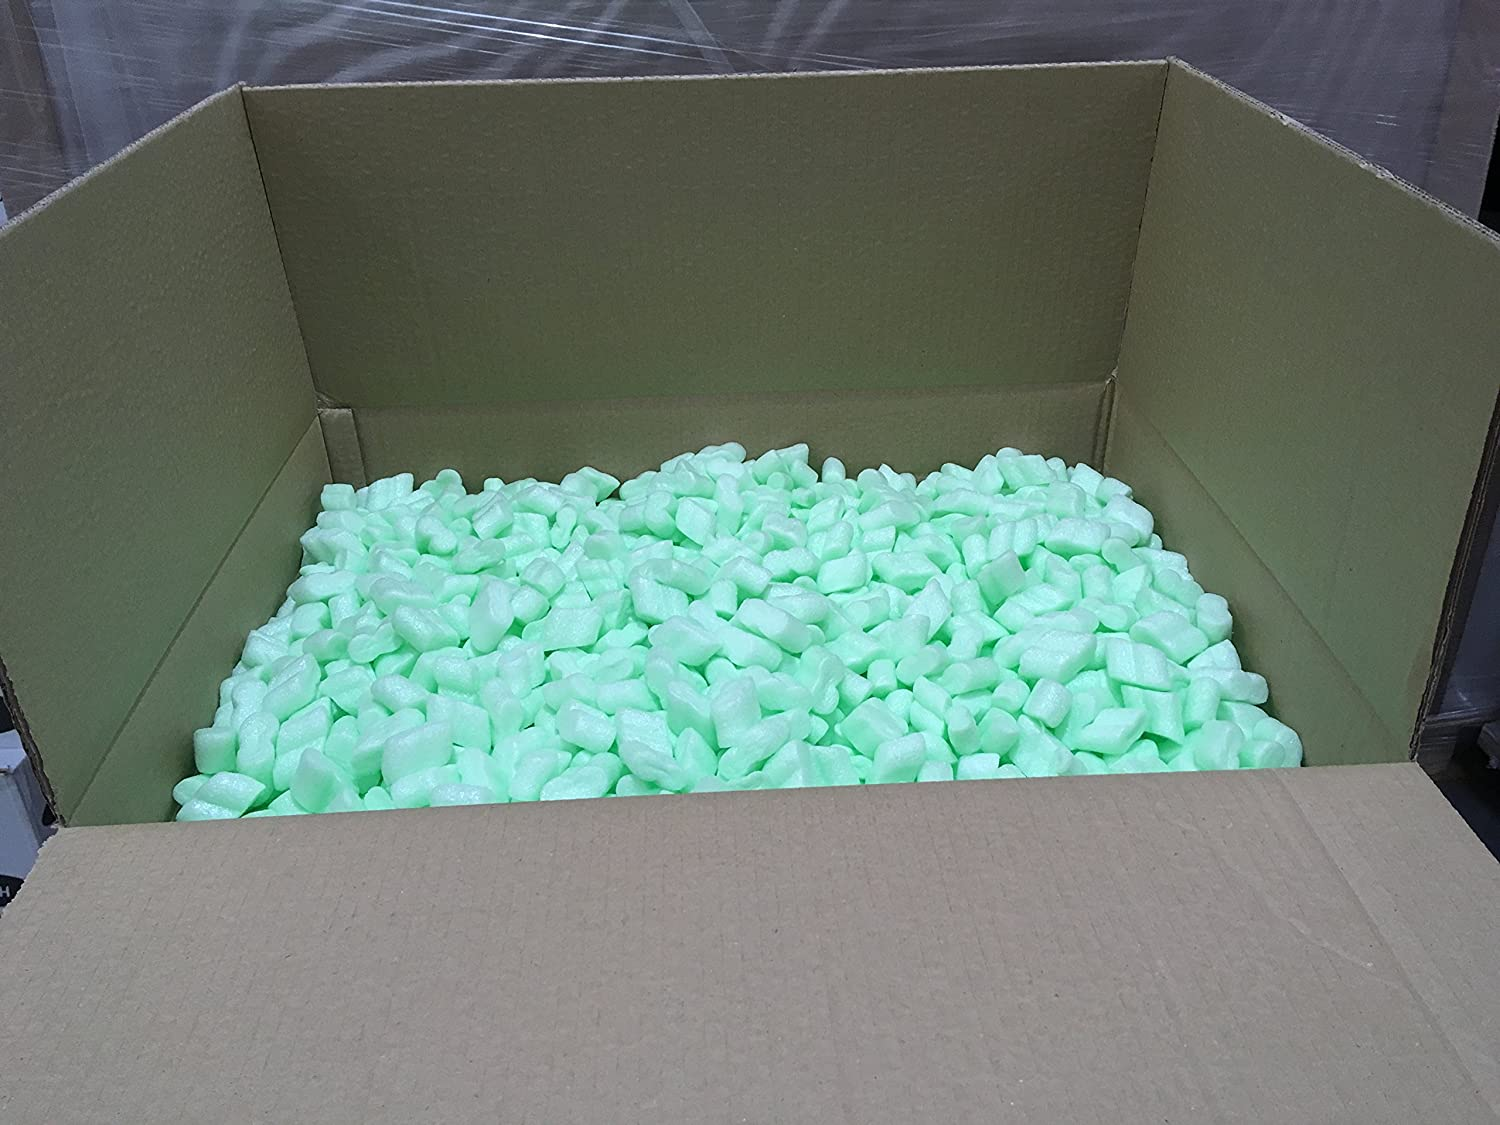 FLO-PAK PACKAGING PEANUTS 5 CUBIC LITRES PACKAGING AND DISPOSABLES